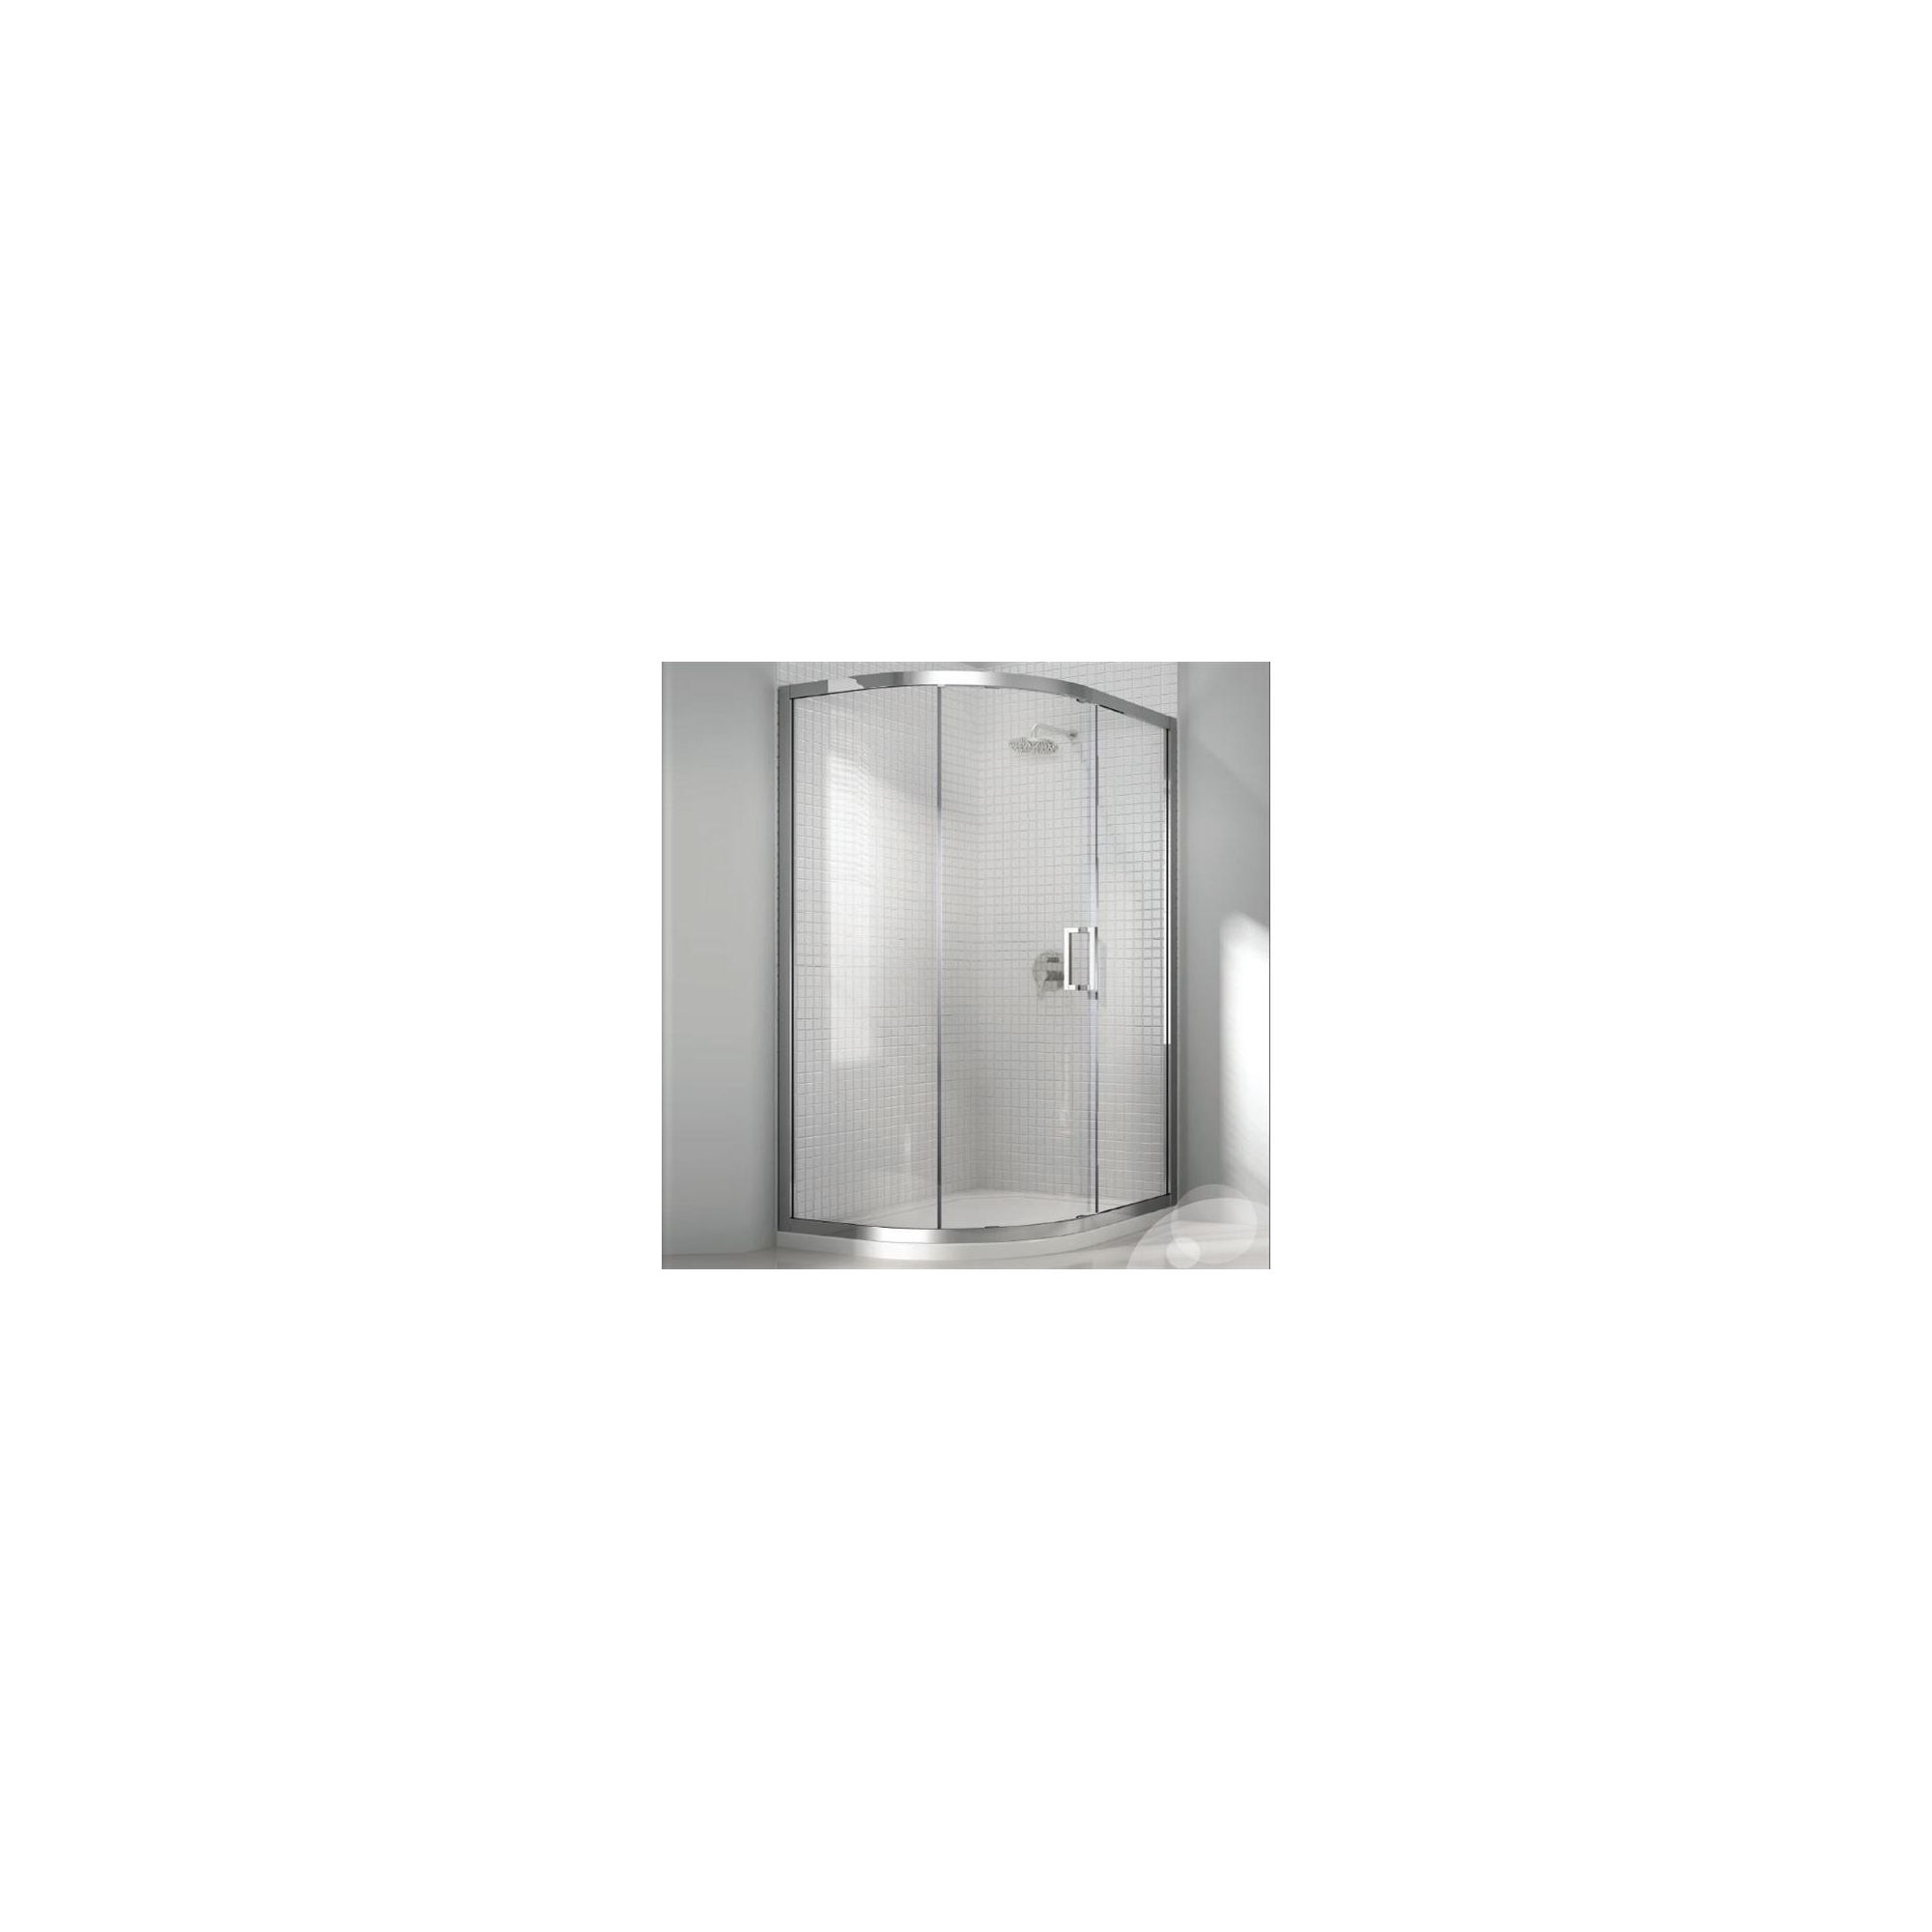 Merlyn Vivid Eight Offset Quadrant Shower Enclosure, 1200mm x 800mm, Left Handed, Low Profile Tray, 8mm Glass at Tesco Direct